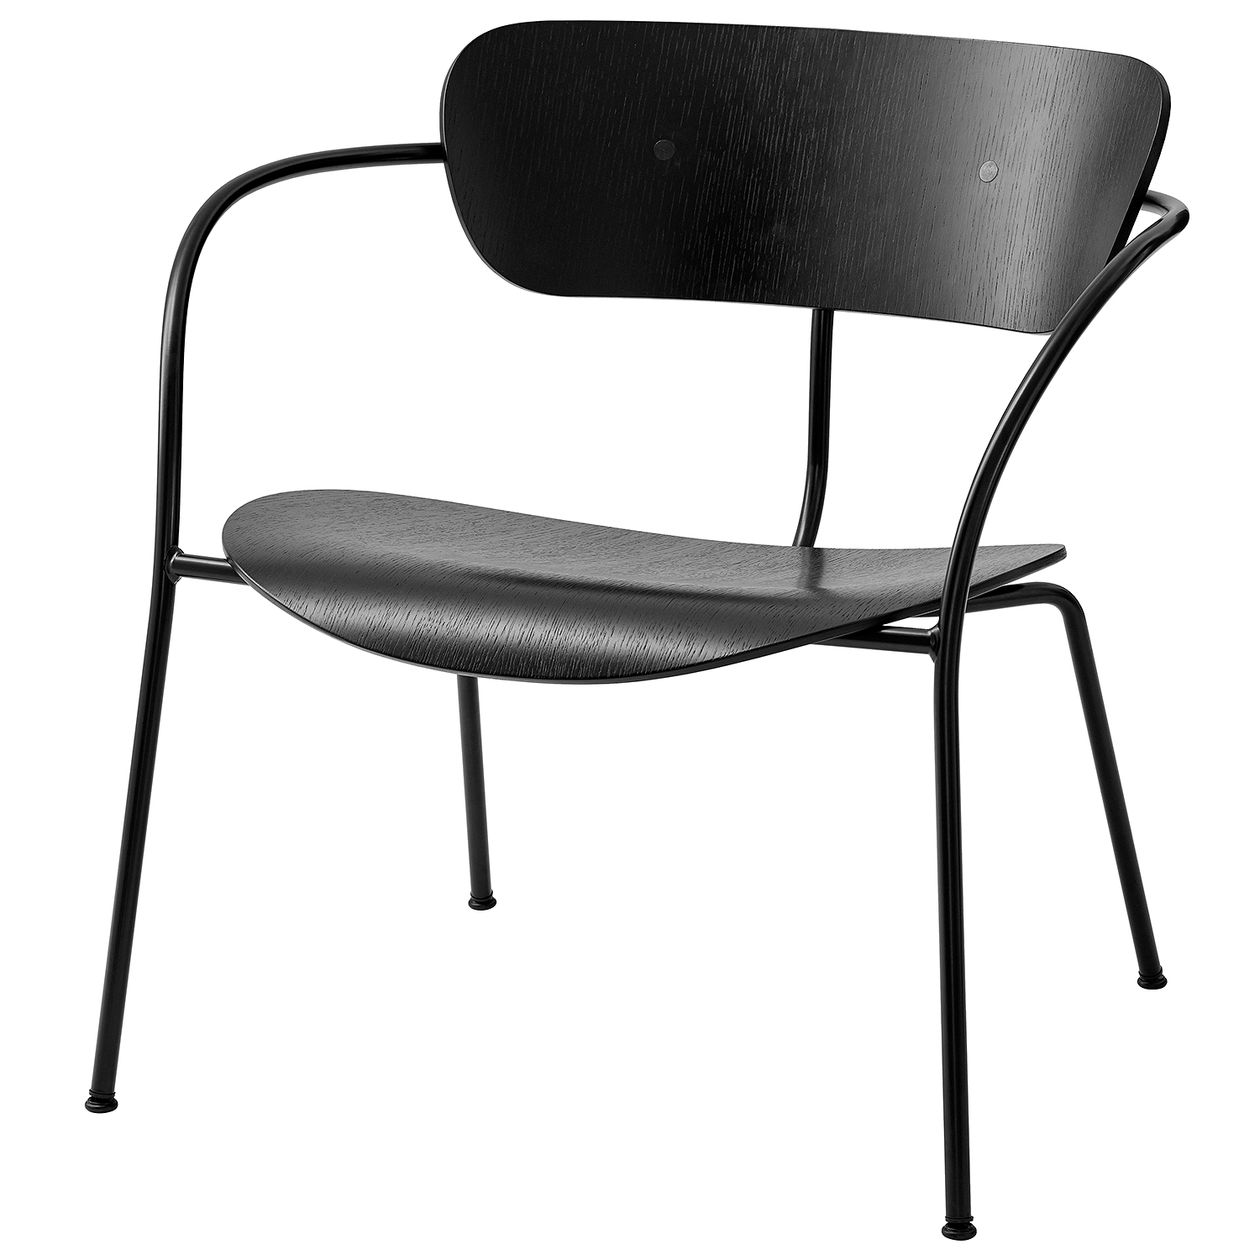 &Tradition Pavilion lounge chair